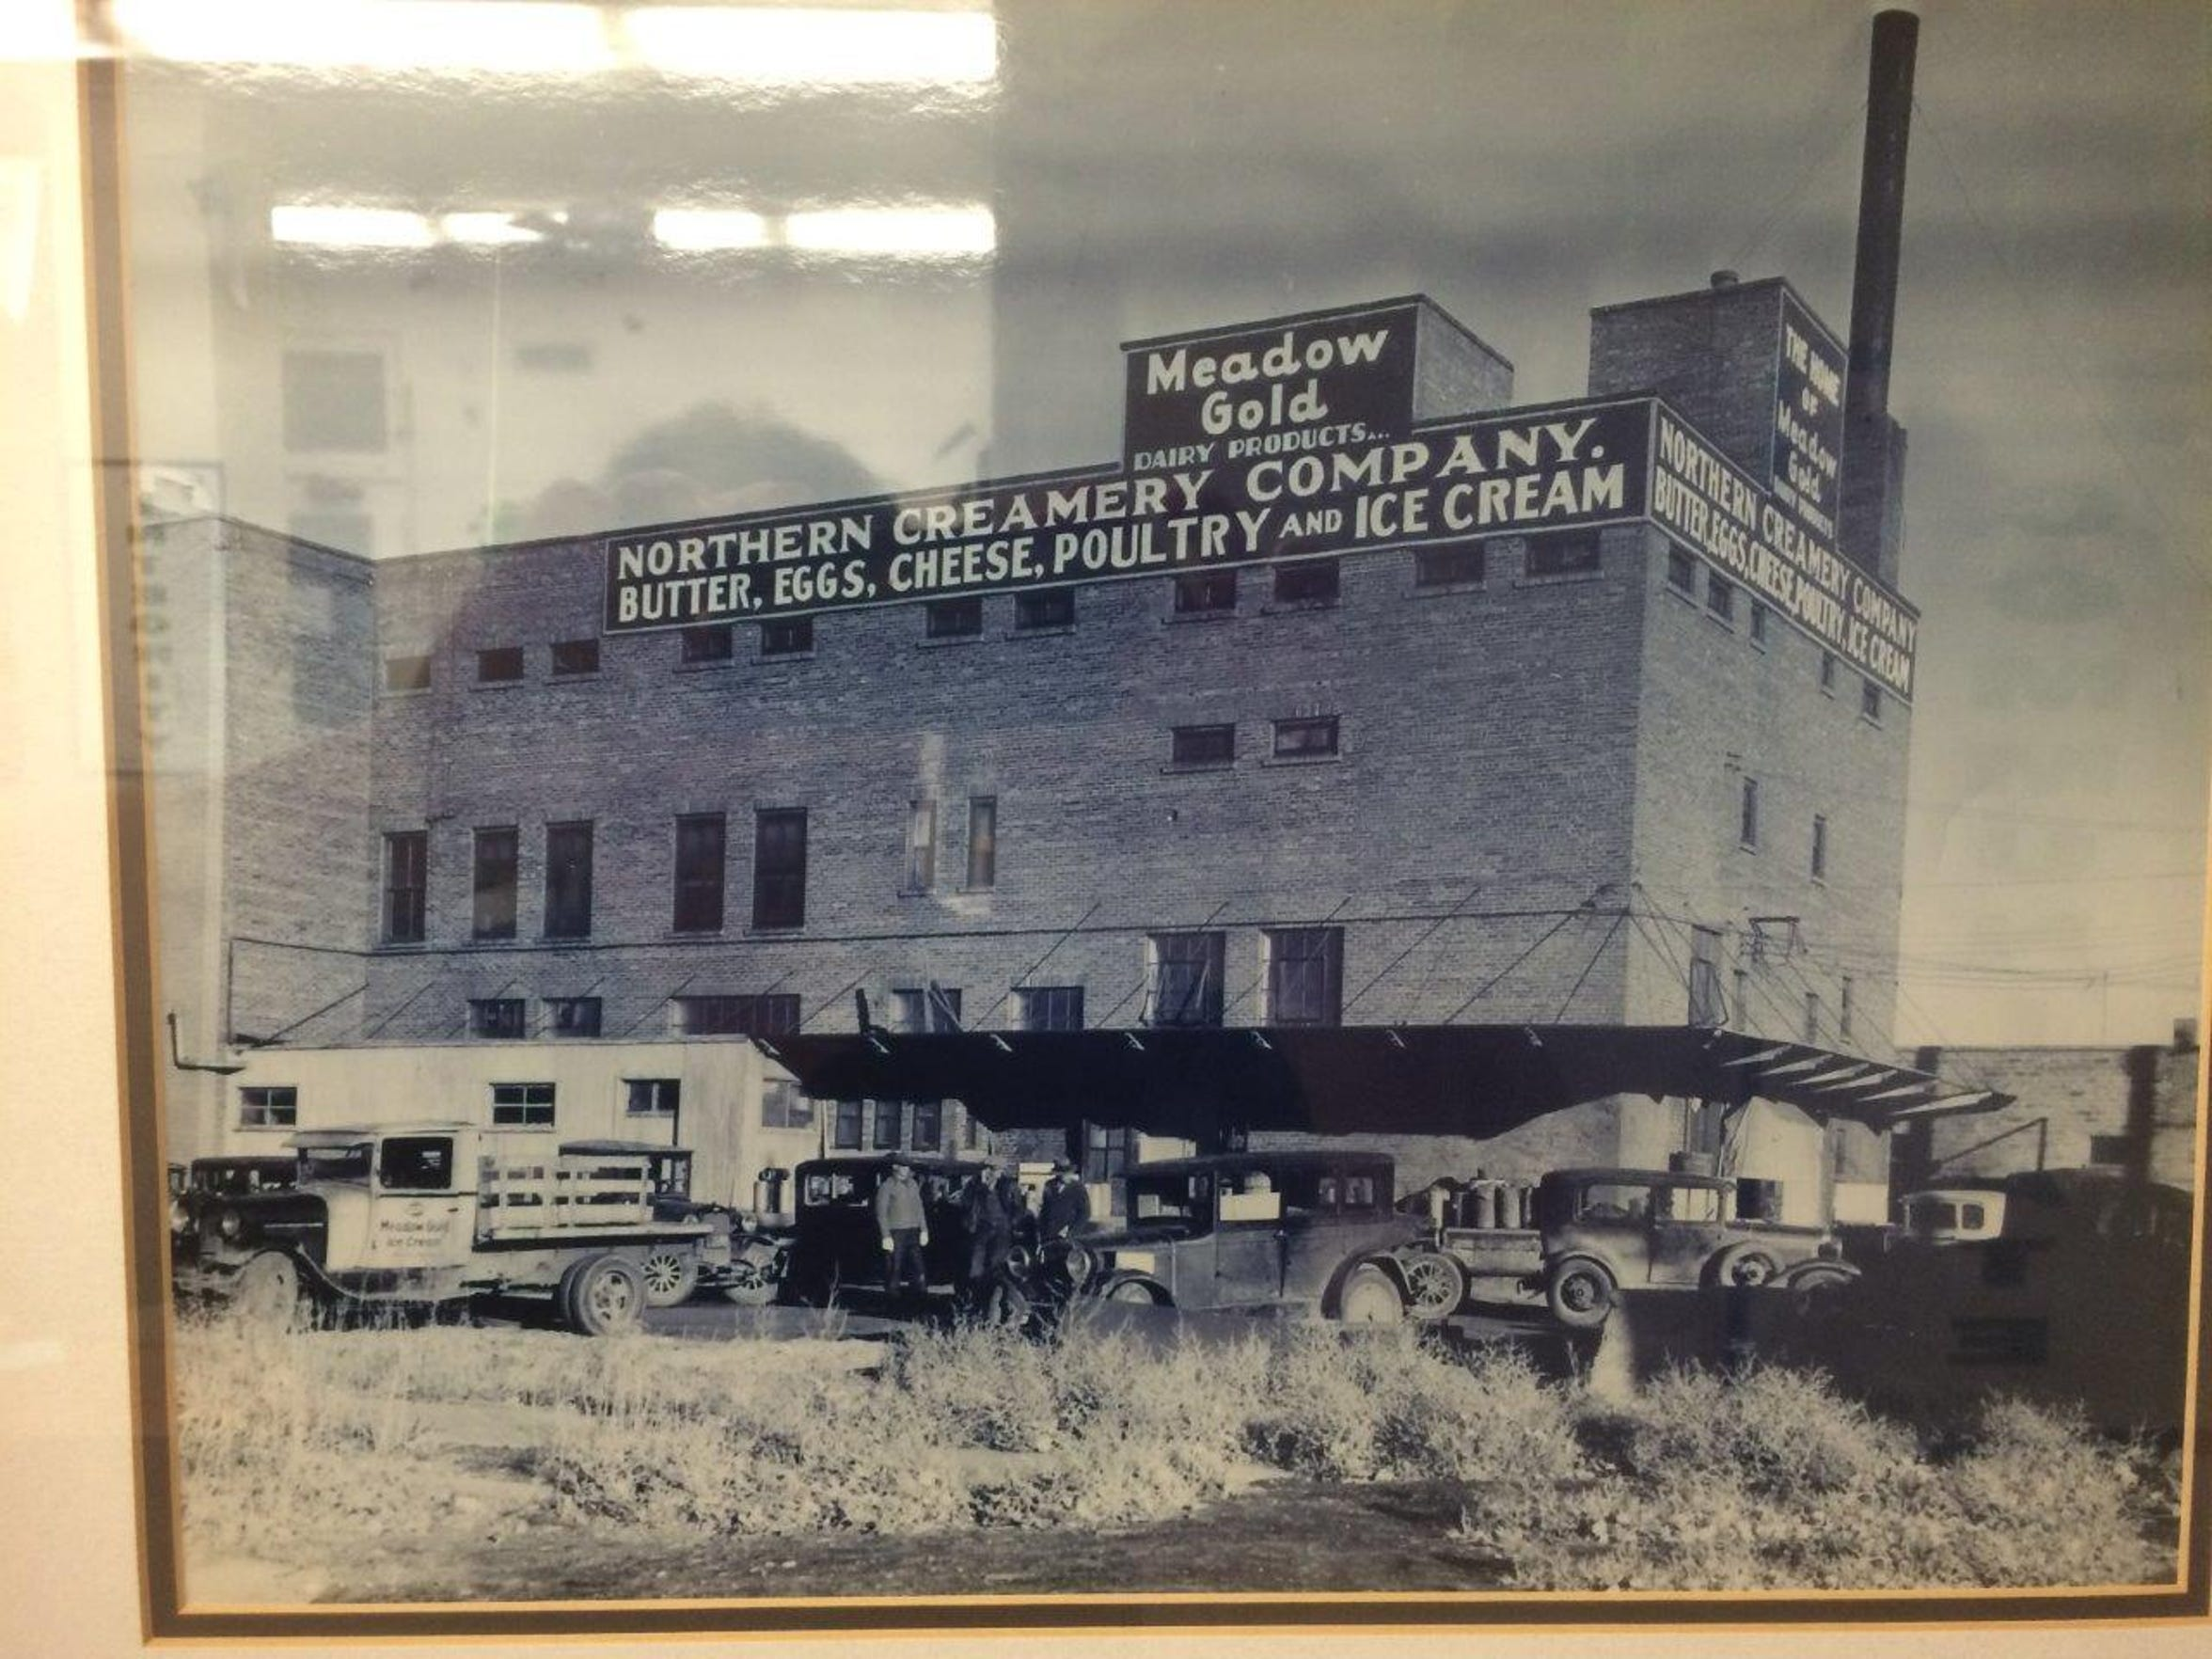 On Sept. 1, 1930, the Meadow Gold division of Beatrice